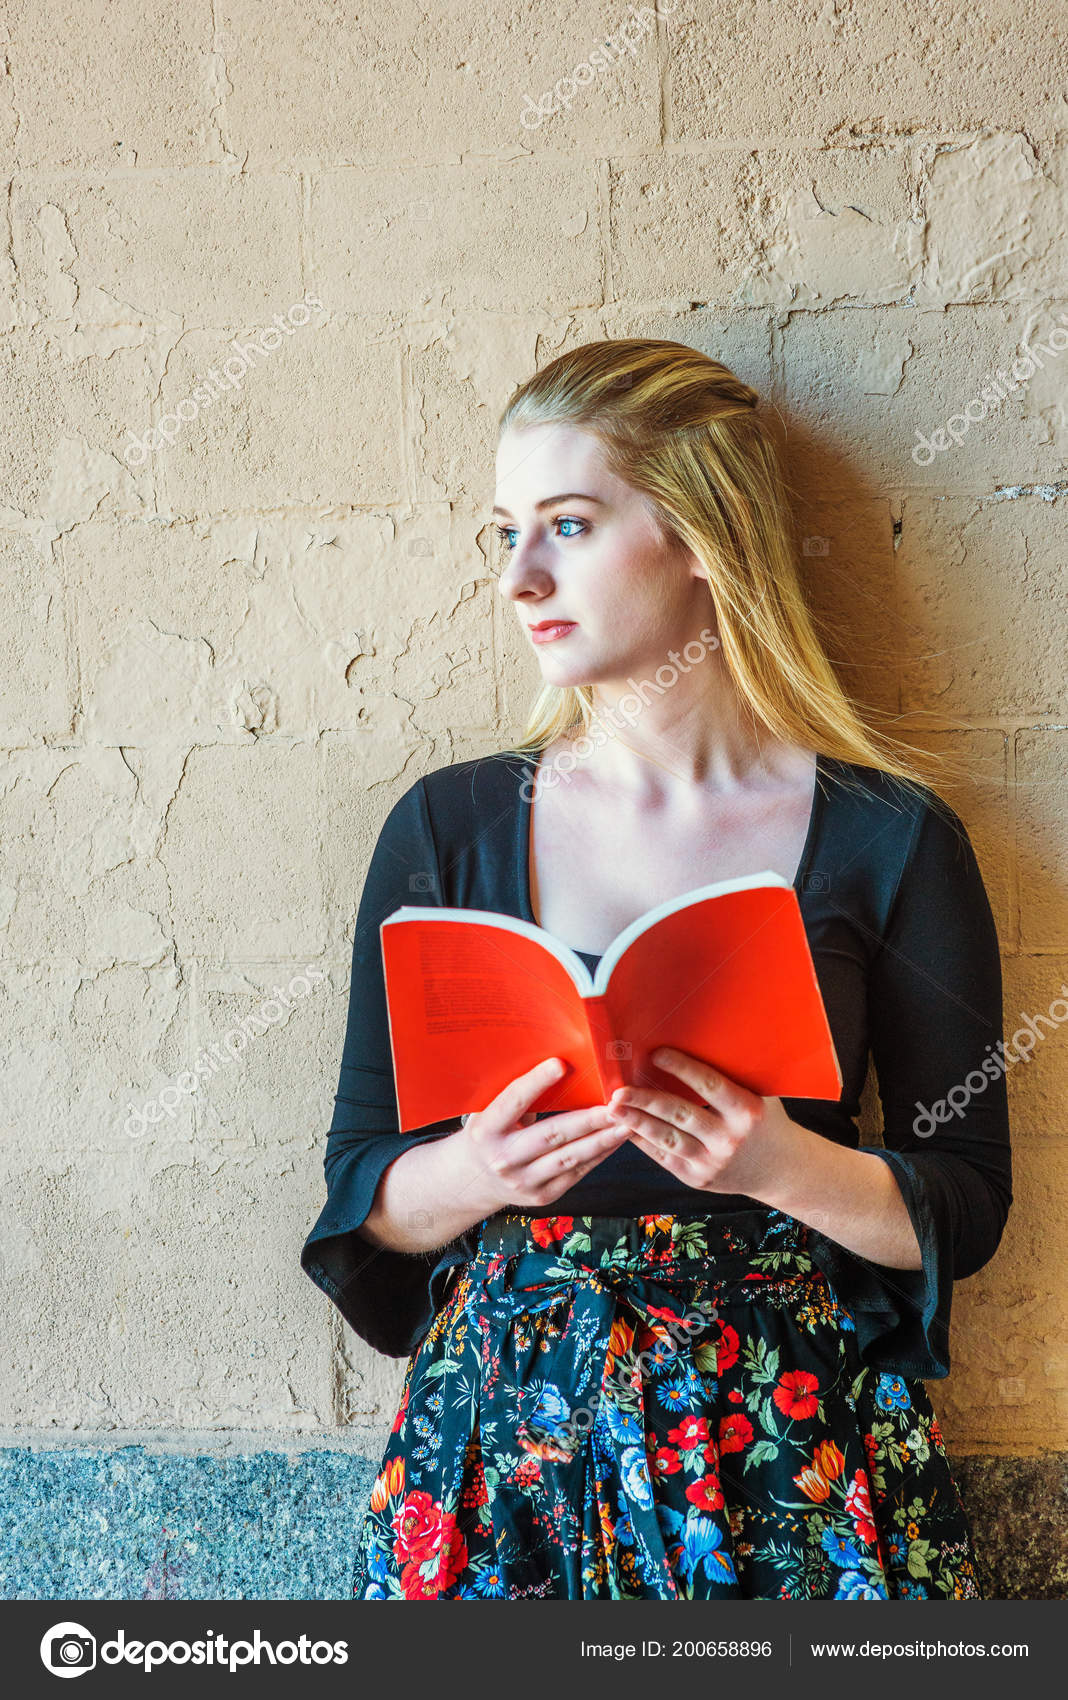 dcf6969bfa7 American teenage girl with long blonde hair, white skin, reading book  outside in New York, wearing black long sleeve low cut t shirt, patterned  skit, ...